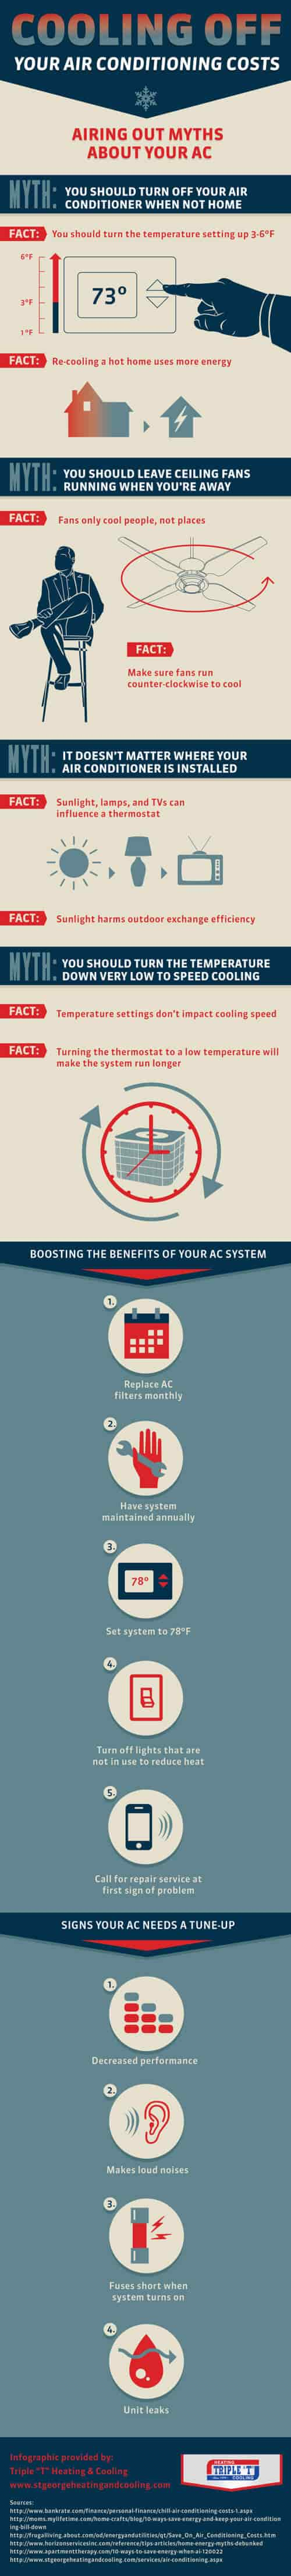 your air conditioning costs infographic